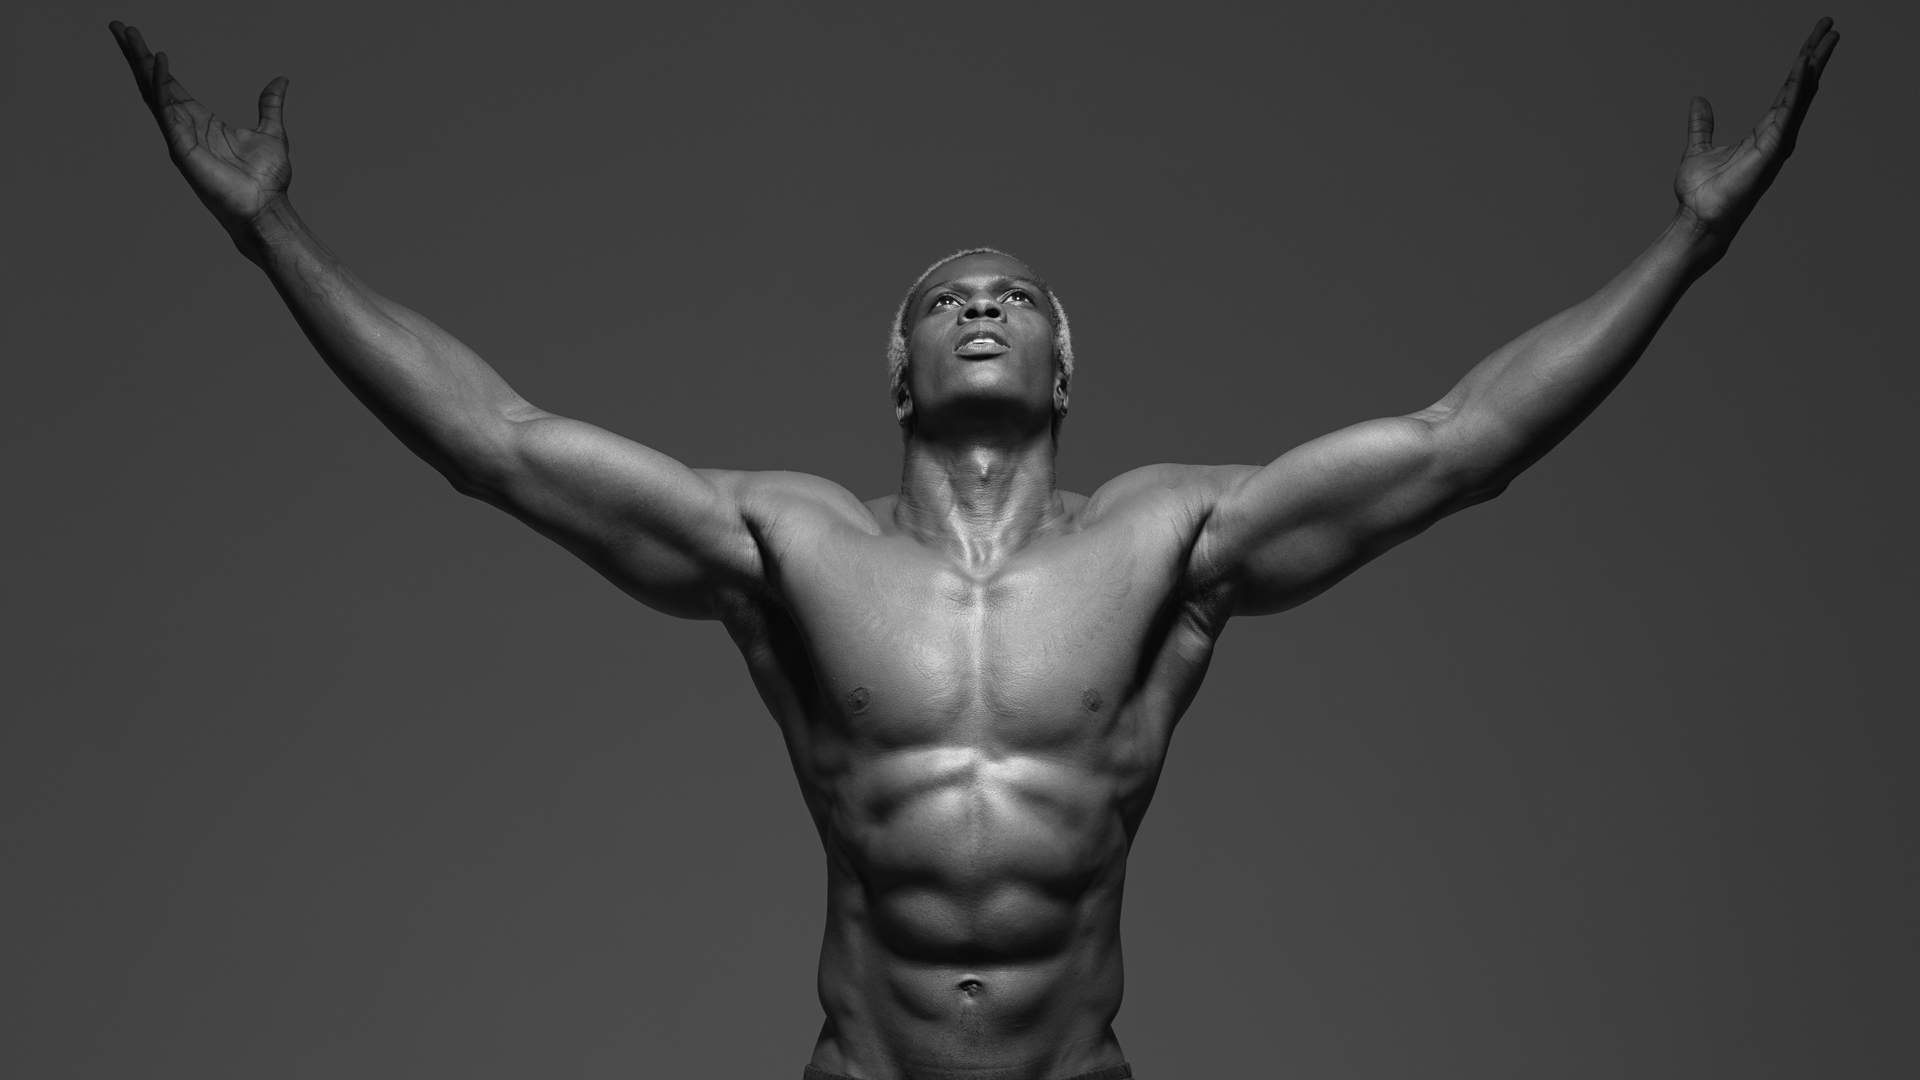 frederic mercier fashion photographer one color editorial portraits people art black and white muscle body athlete crossfit fitness boxing